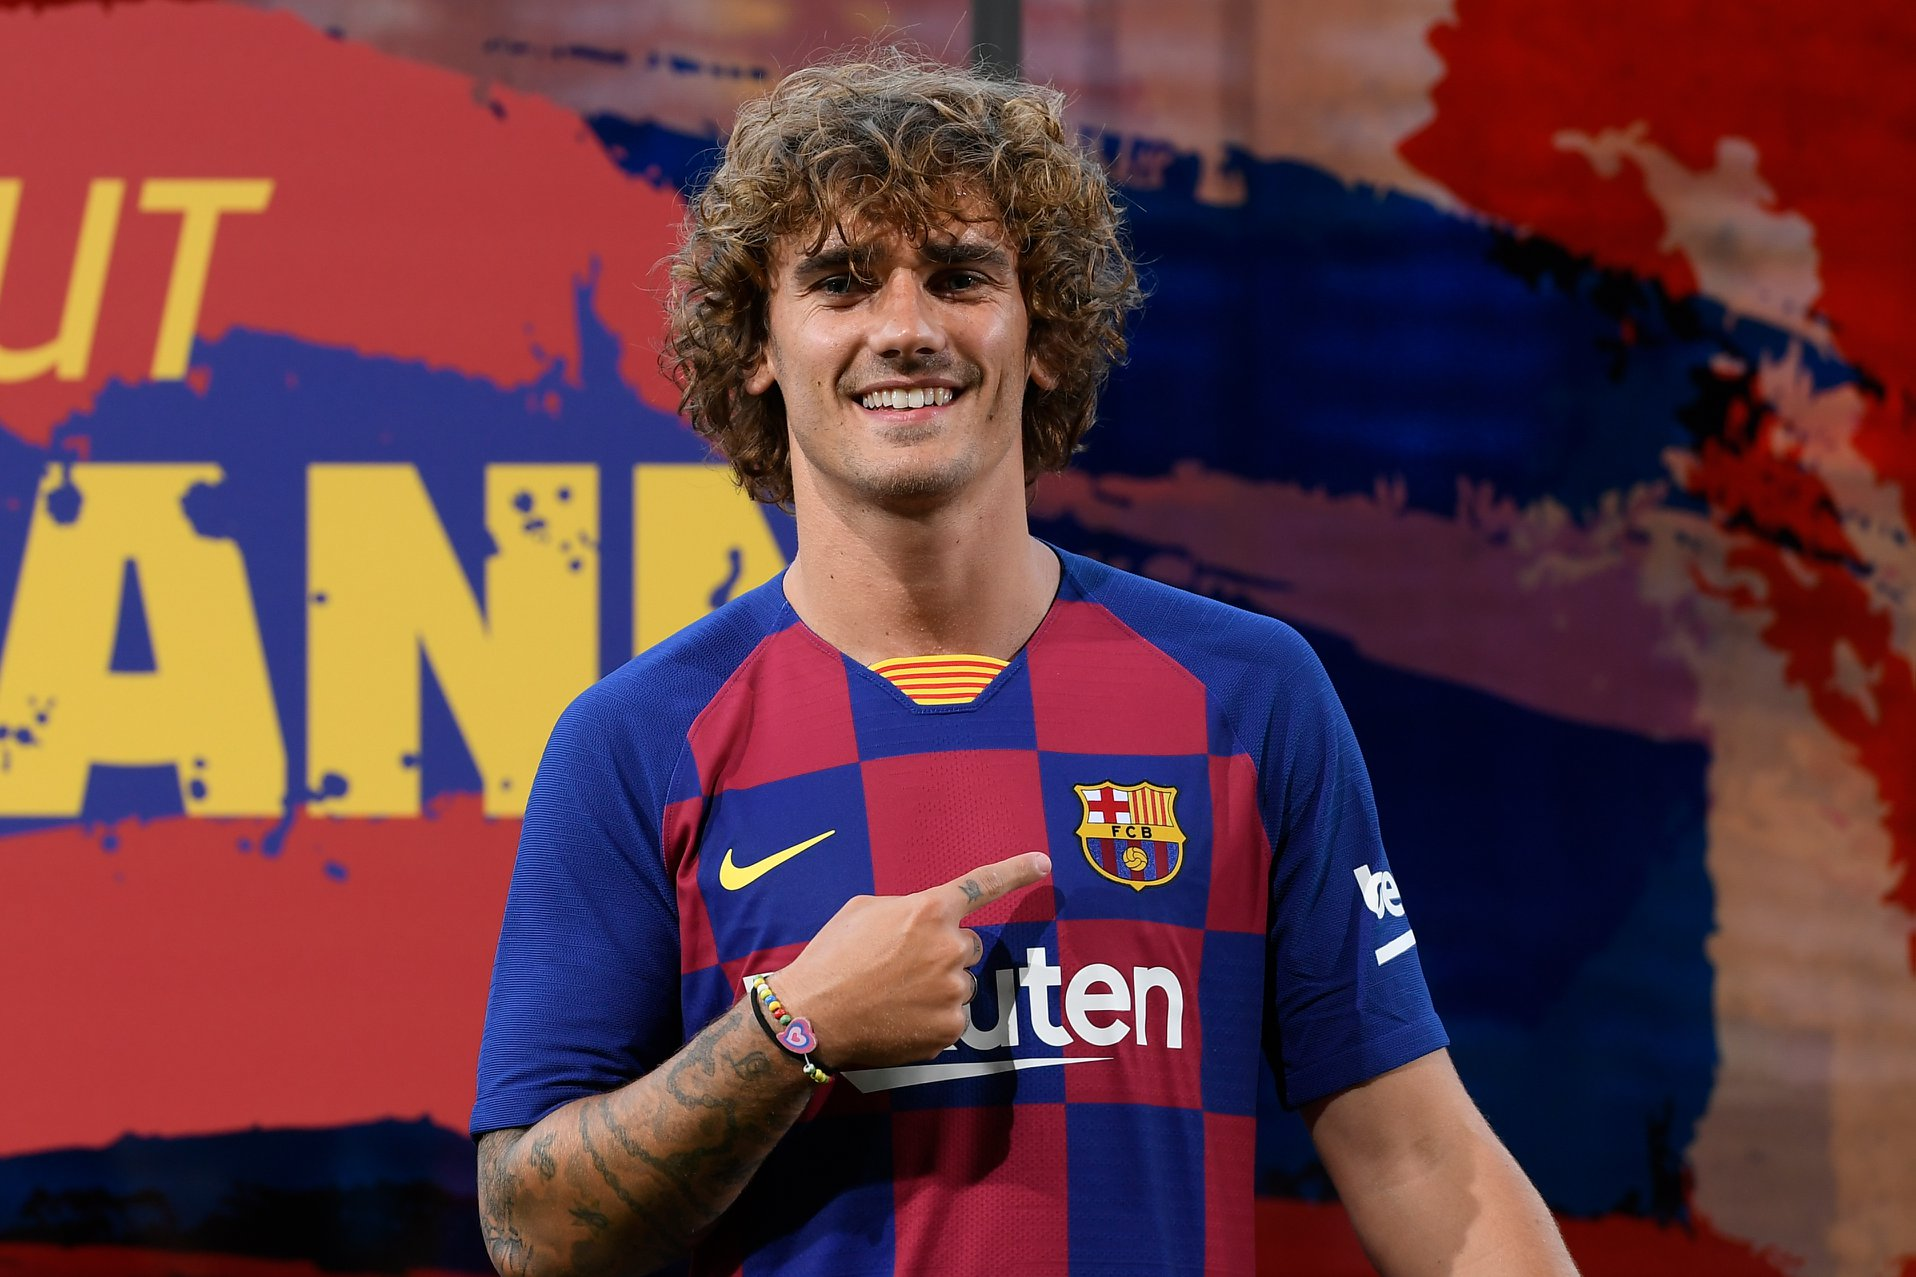 Griezmann to wear number 17 shirt - Bóng Đá